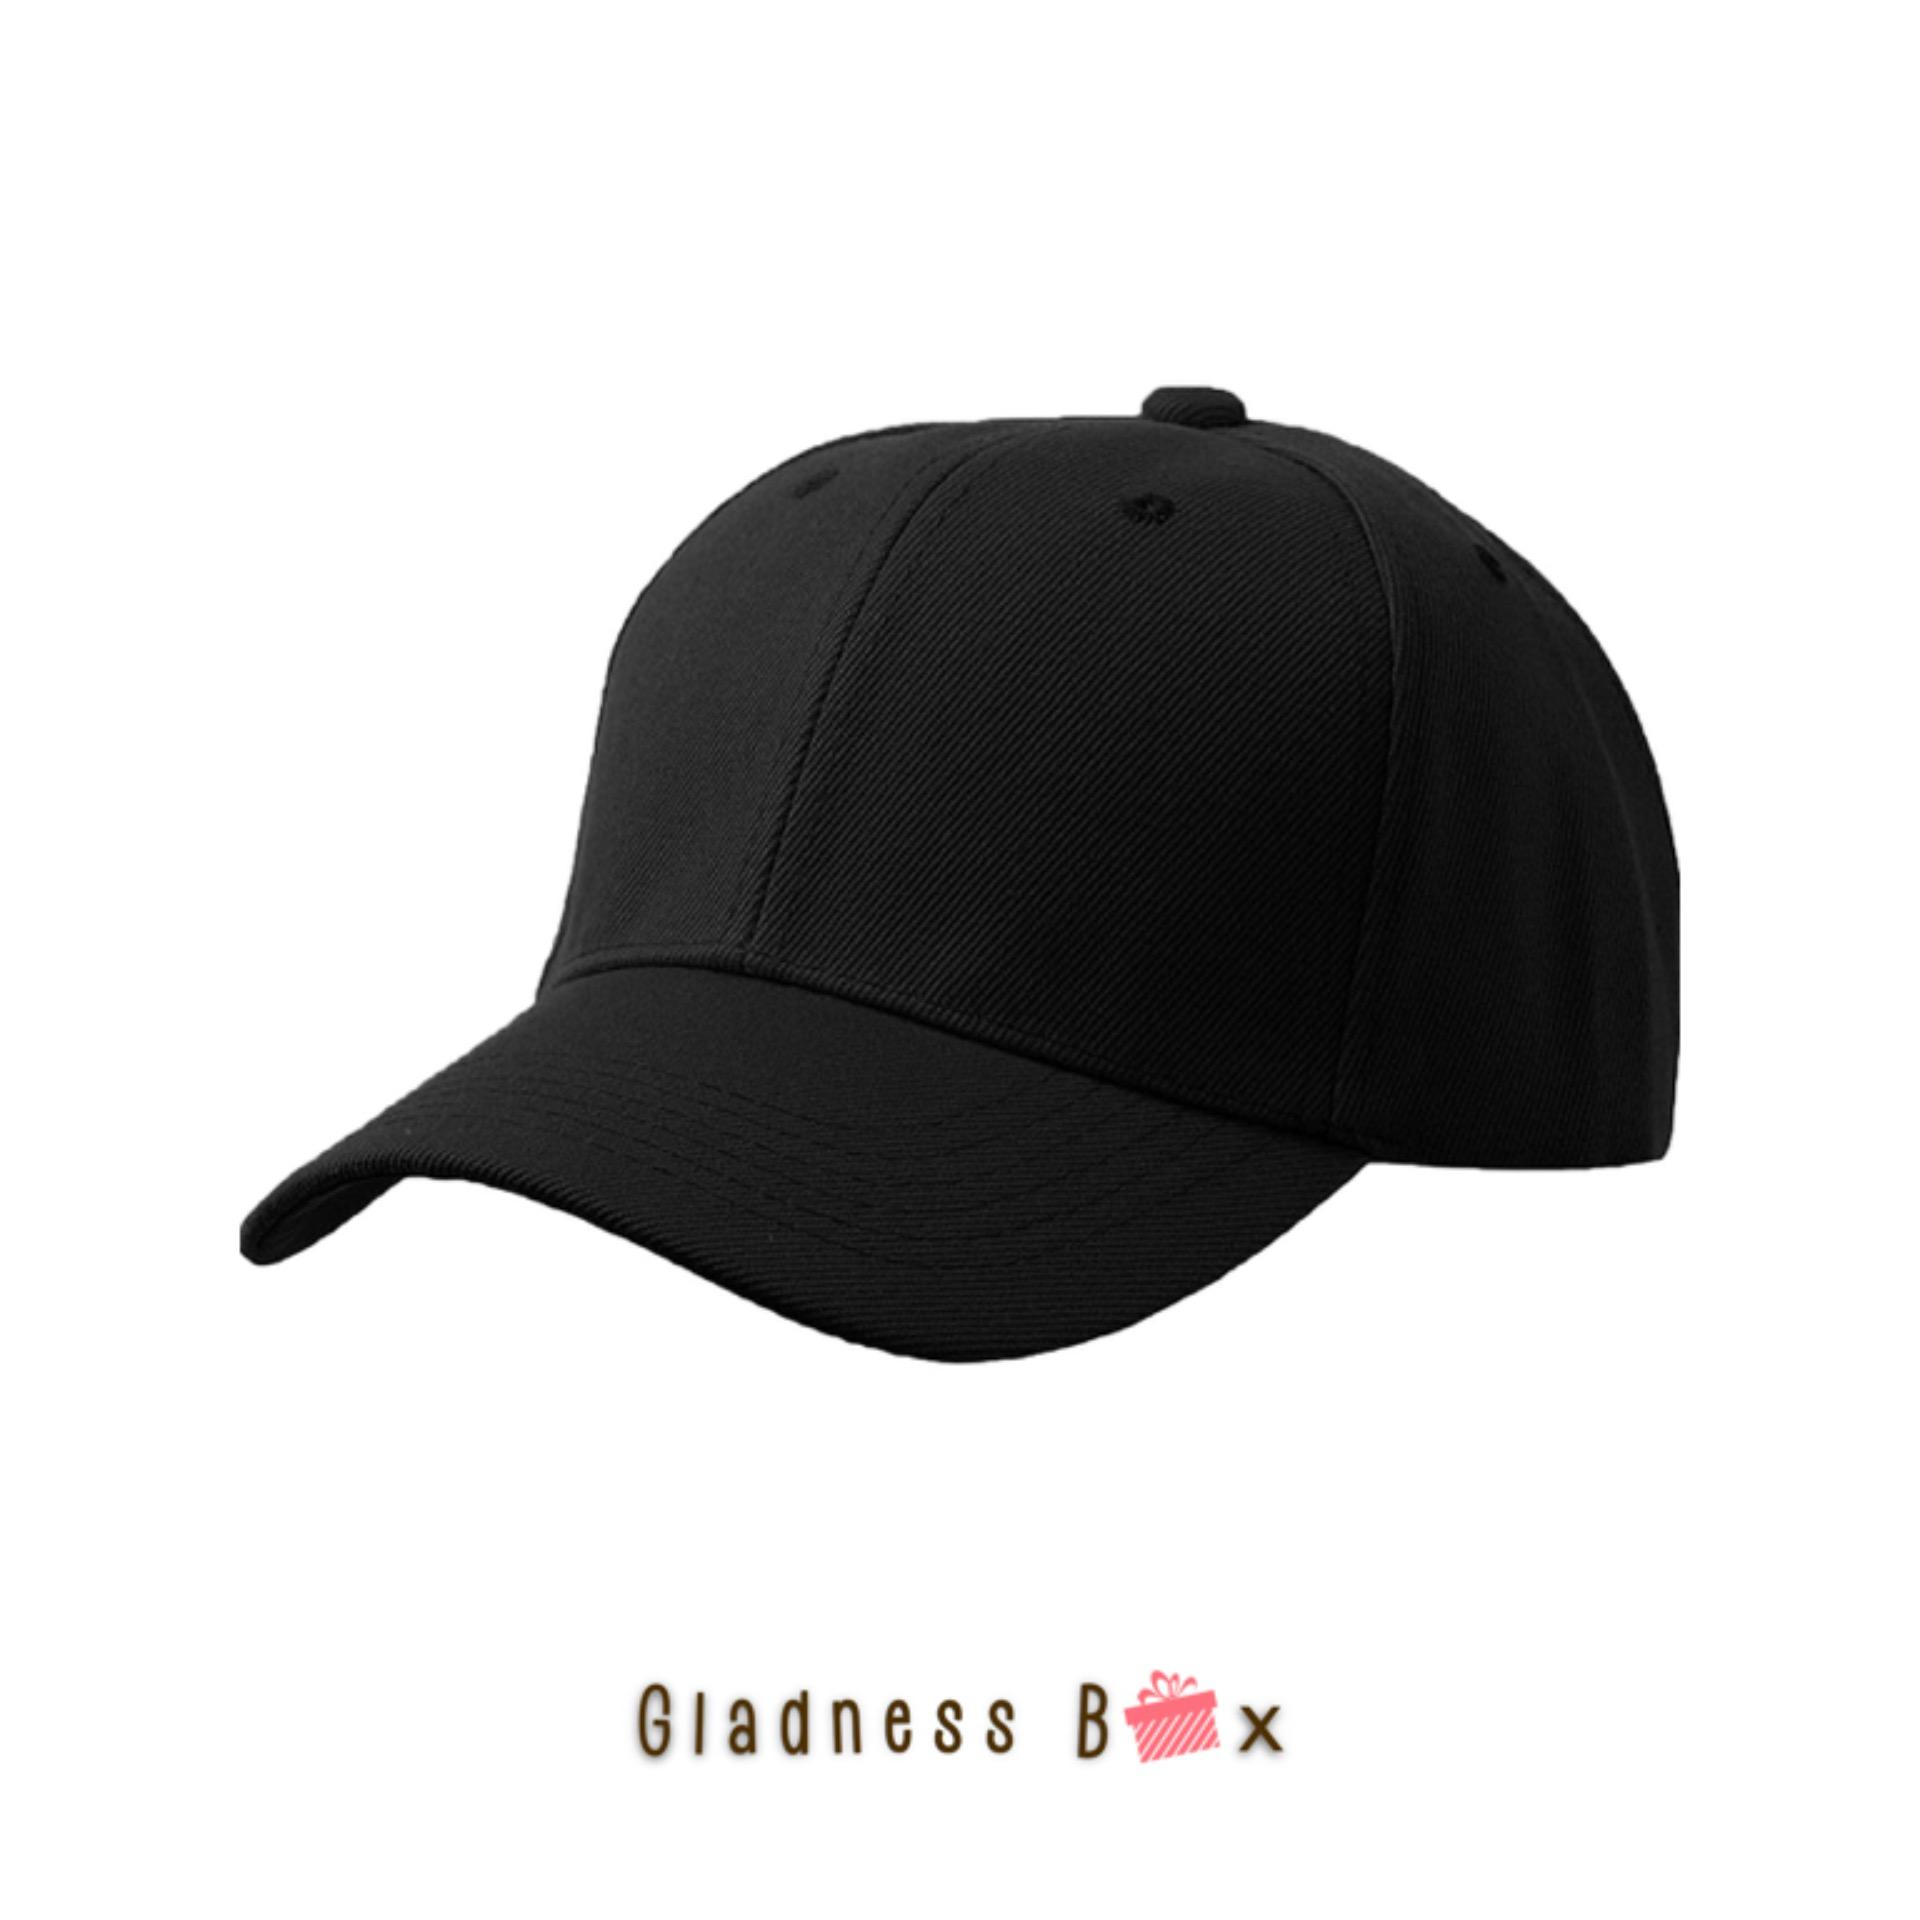 Gladness Box High Quality Plain Baseball Cap for Men Women Unisex a34a06e88e4b